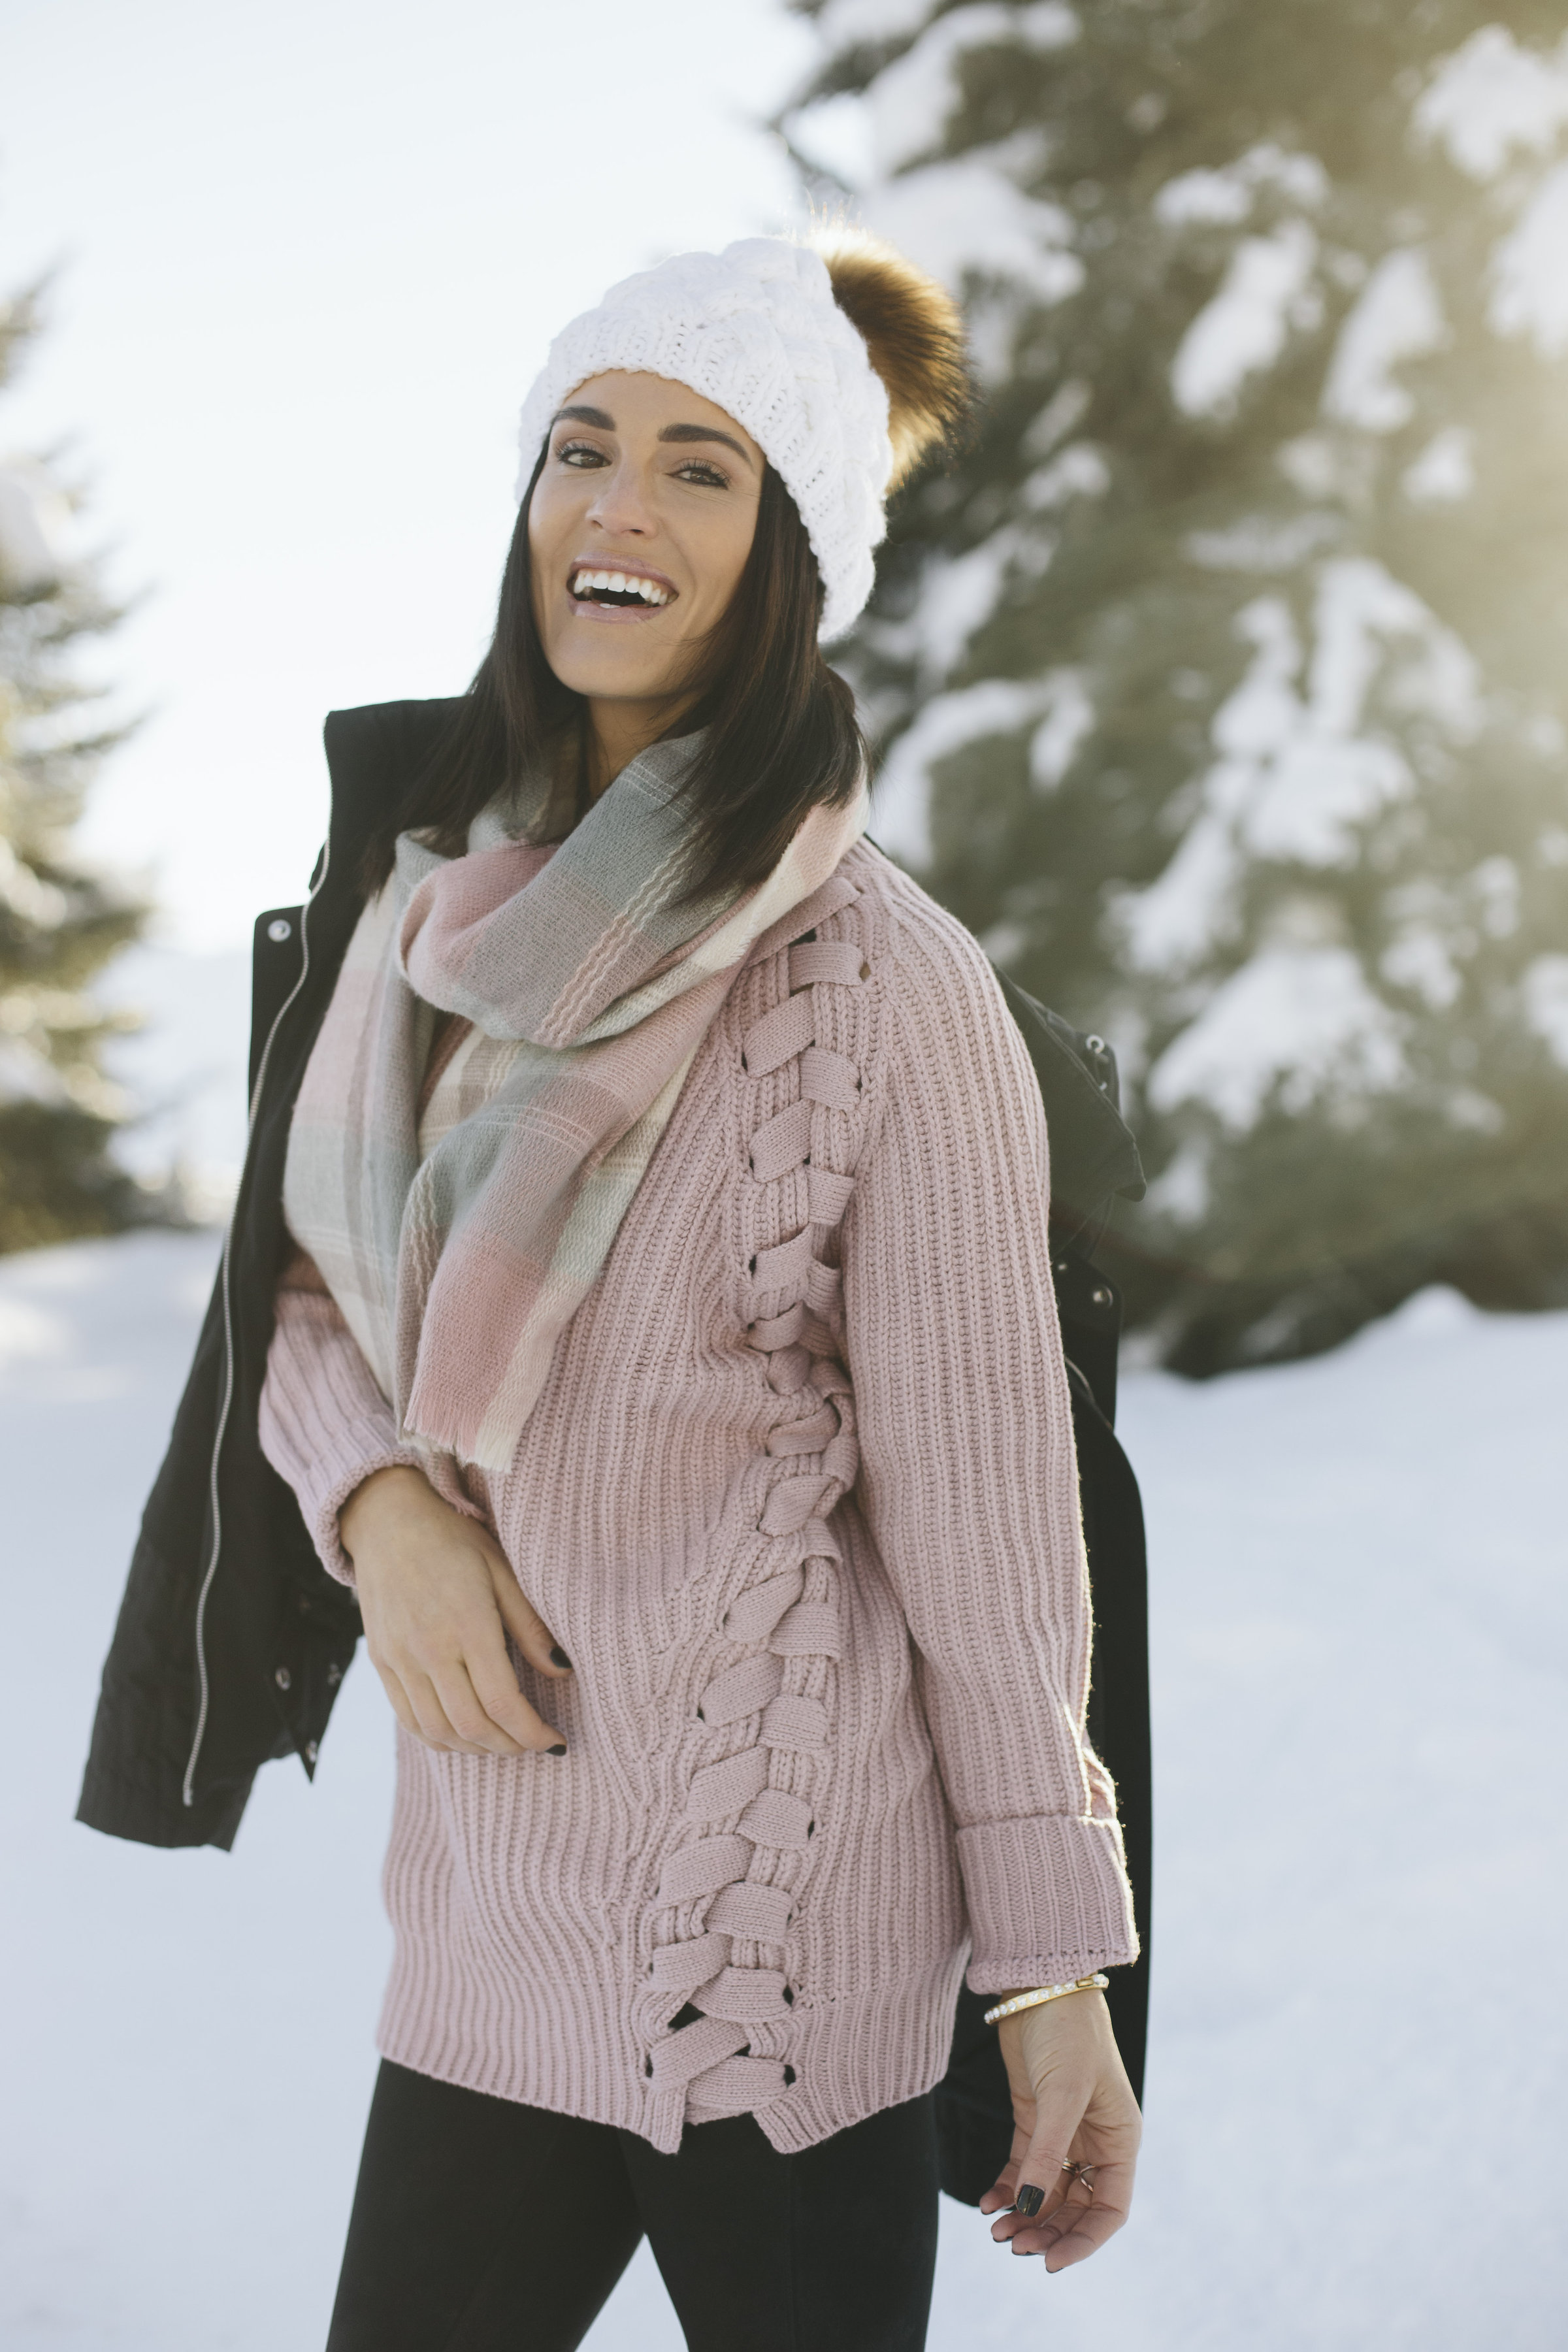 blush knit winter outfit